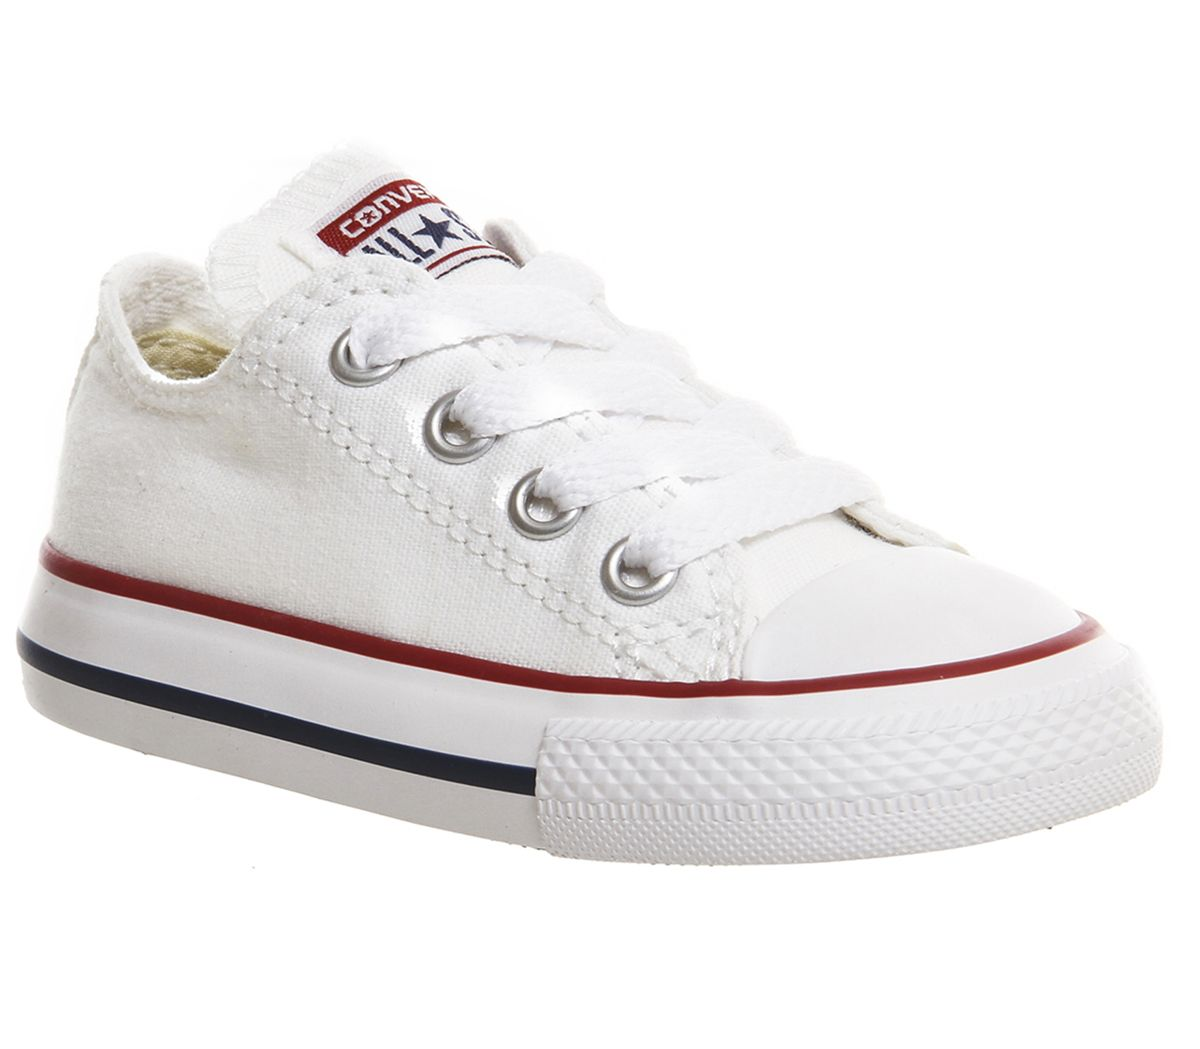 d3a963cf3c97 Converse All Star Low Infant Shoes White - Unisex